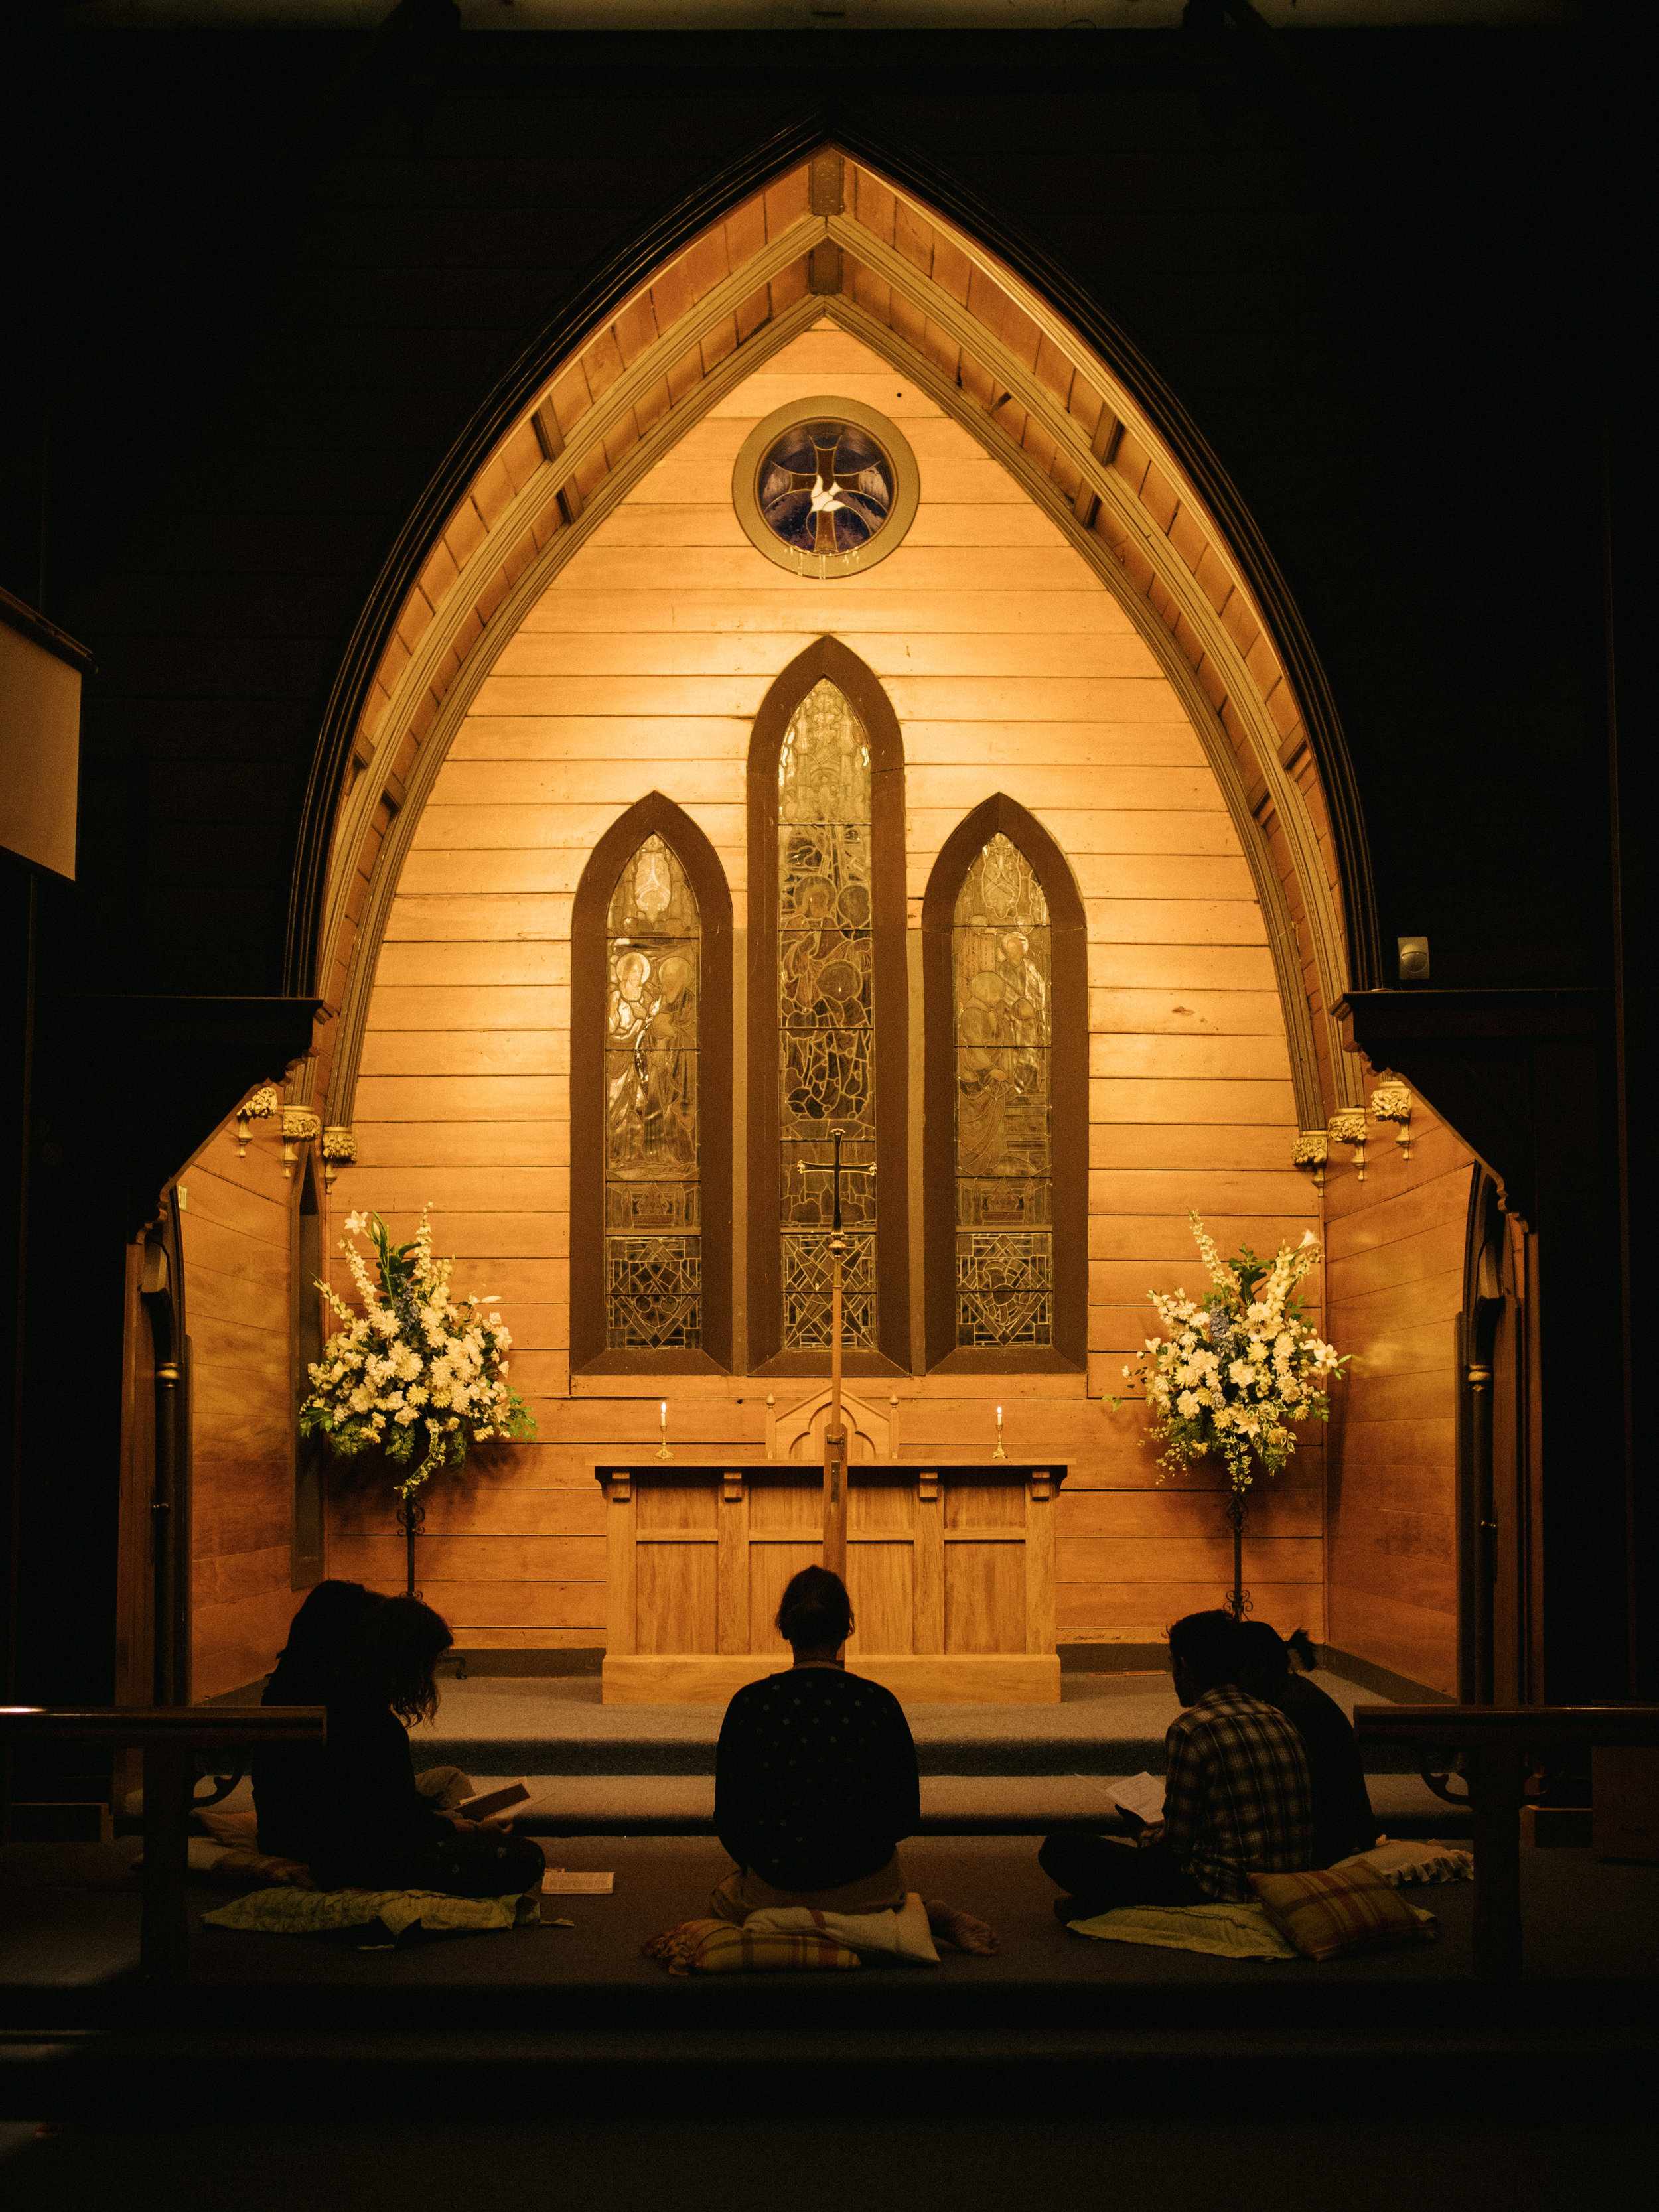 DAILY PRAYER - We meet for daily prayer, Monday - Friday, at 7am and 9pm. We follow a simple modern liturgy.